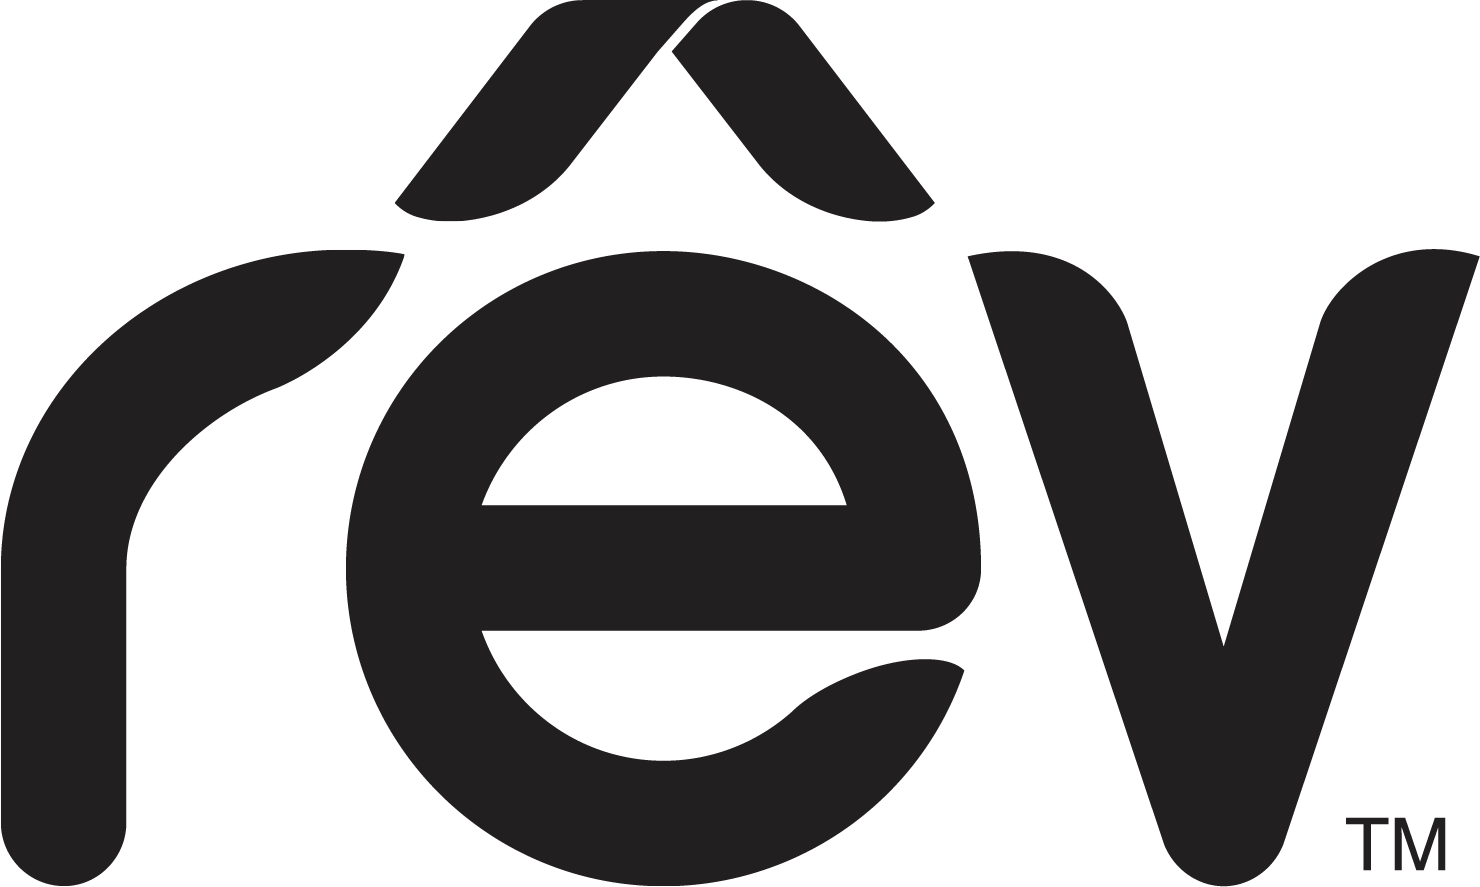 rev_logo_dark_mono-2